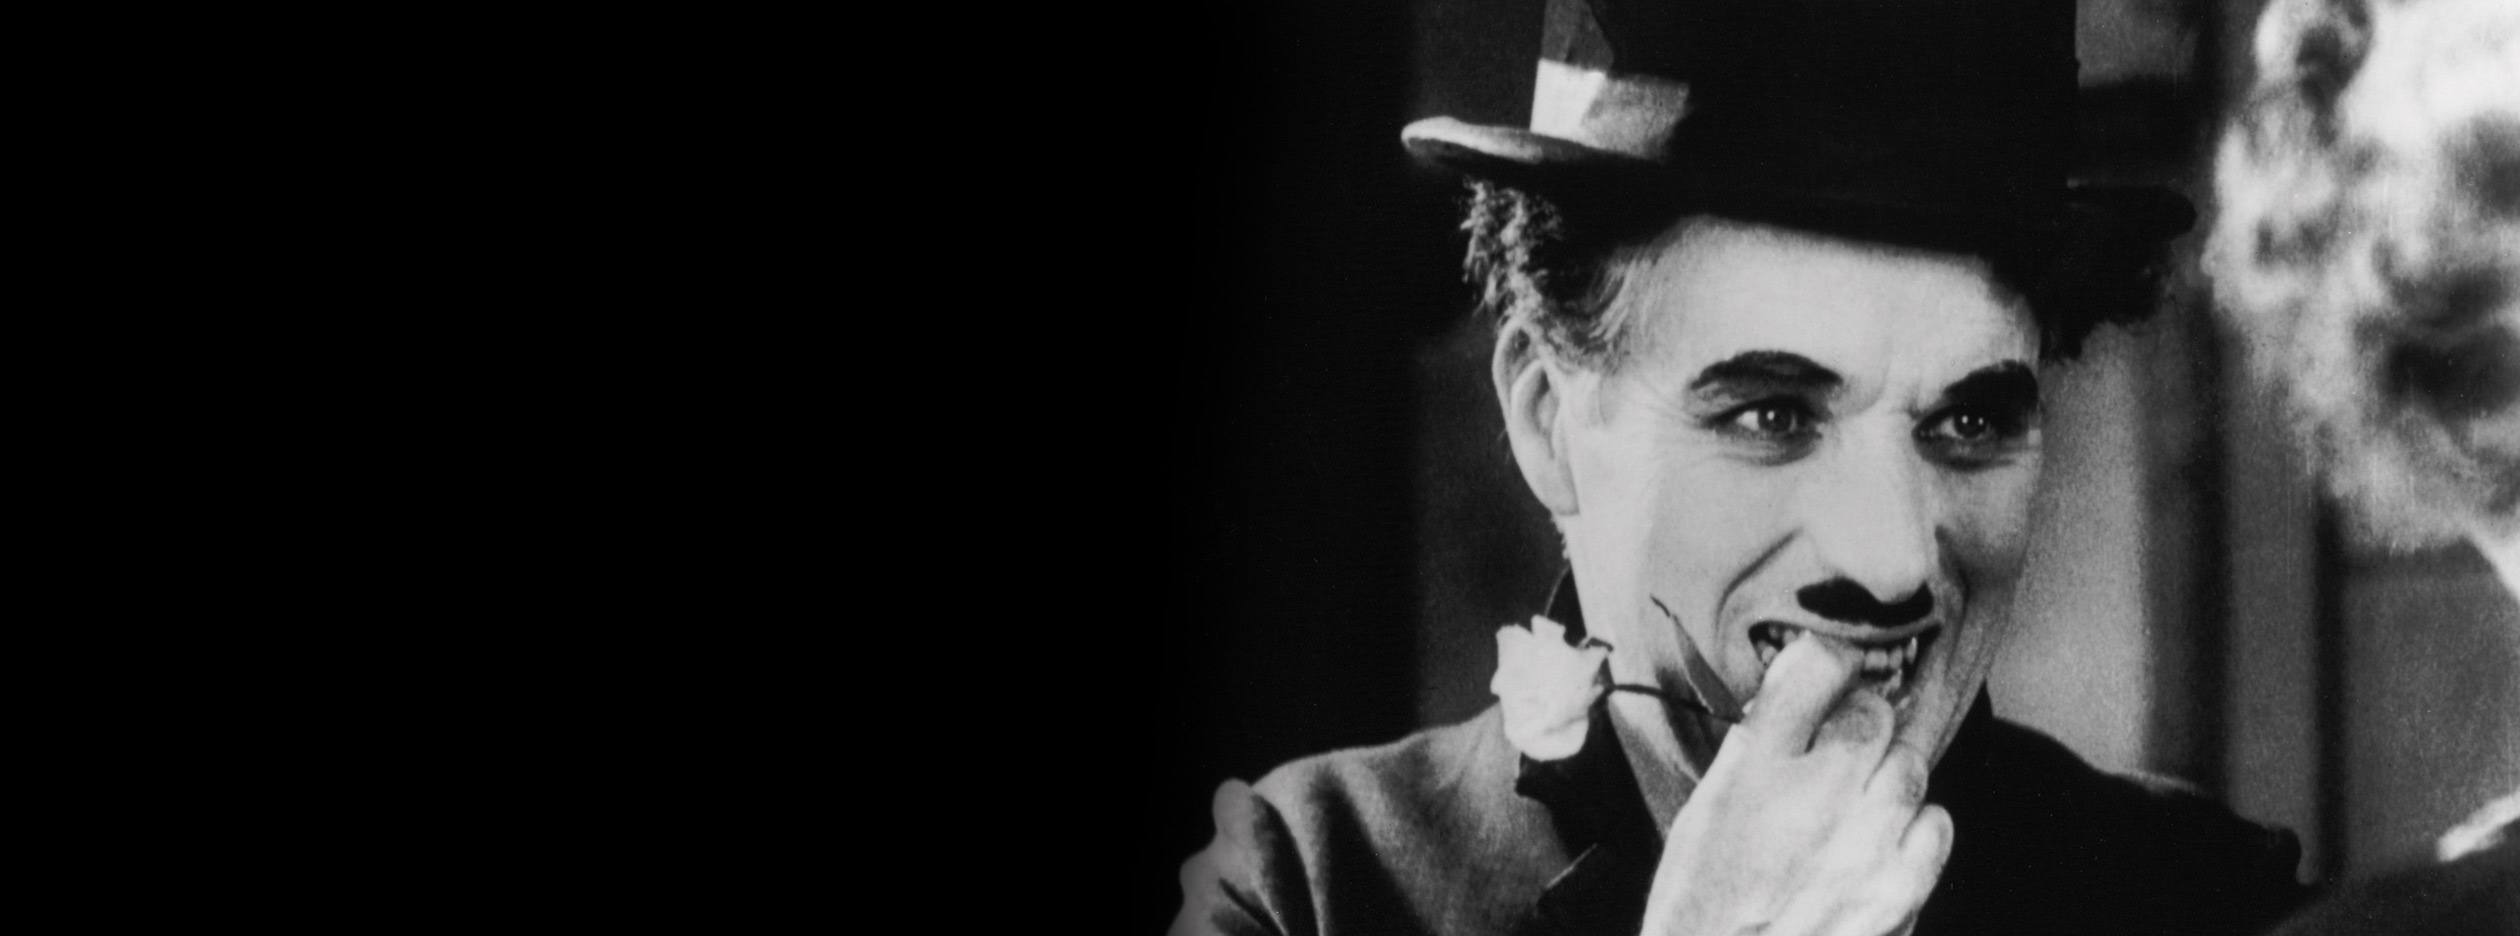 charles chaplin and his movies